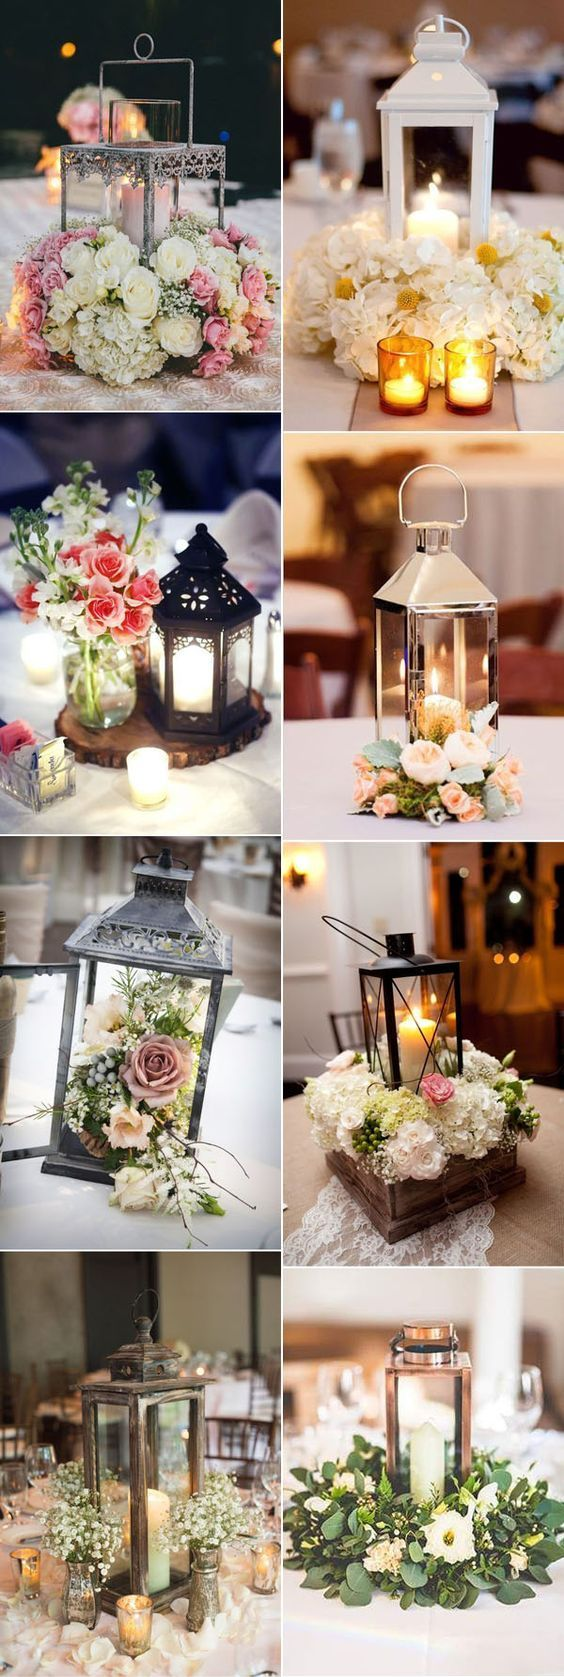 32 Stunning Wedding Centerpieces Ideas - Elegantweddinginvites.com Blog